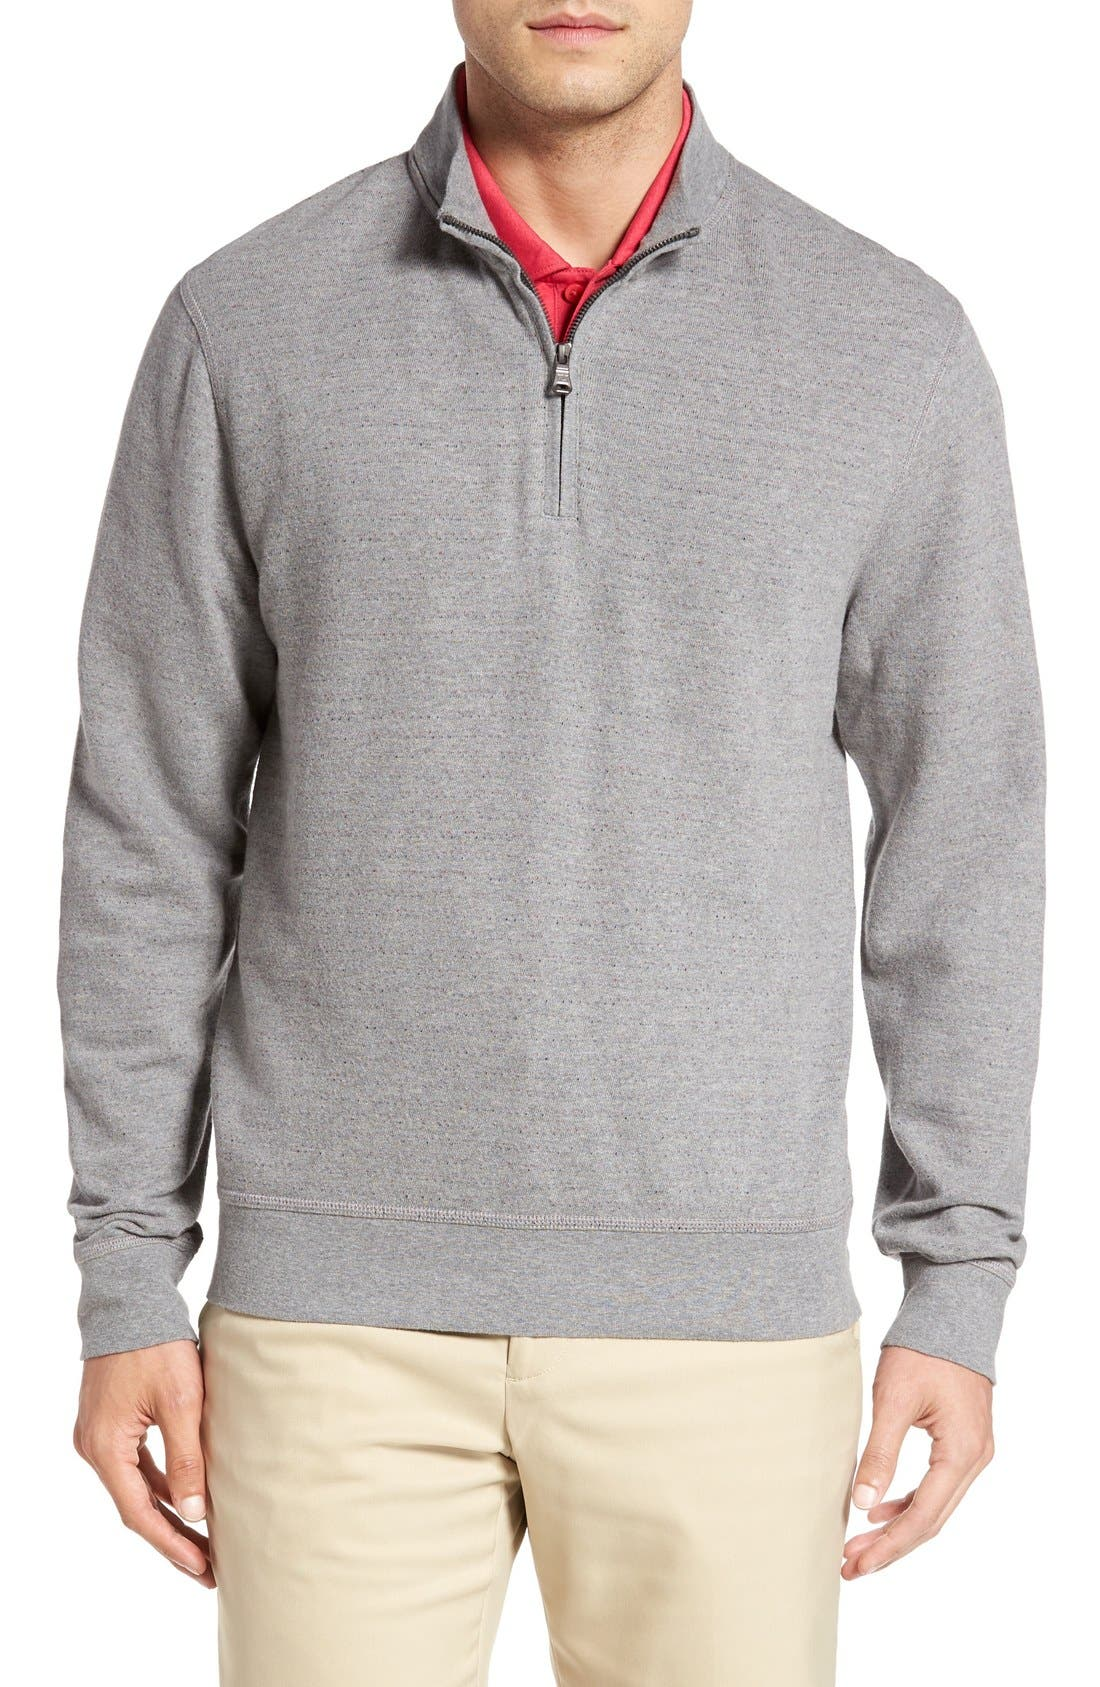 Cutter & Buck 'Gleann' Quarter Zip Pullover (Big & Tall)